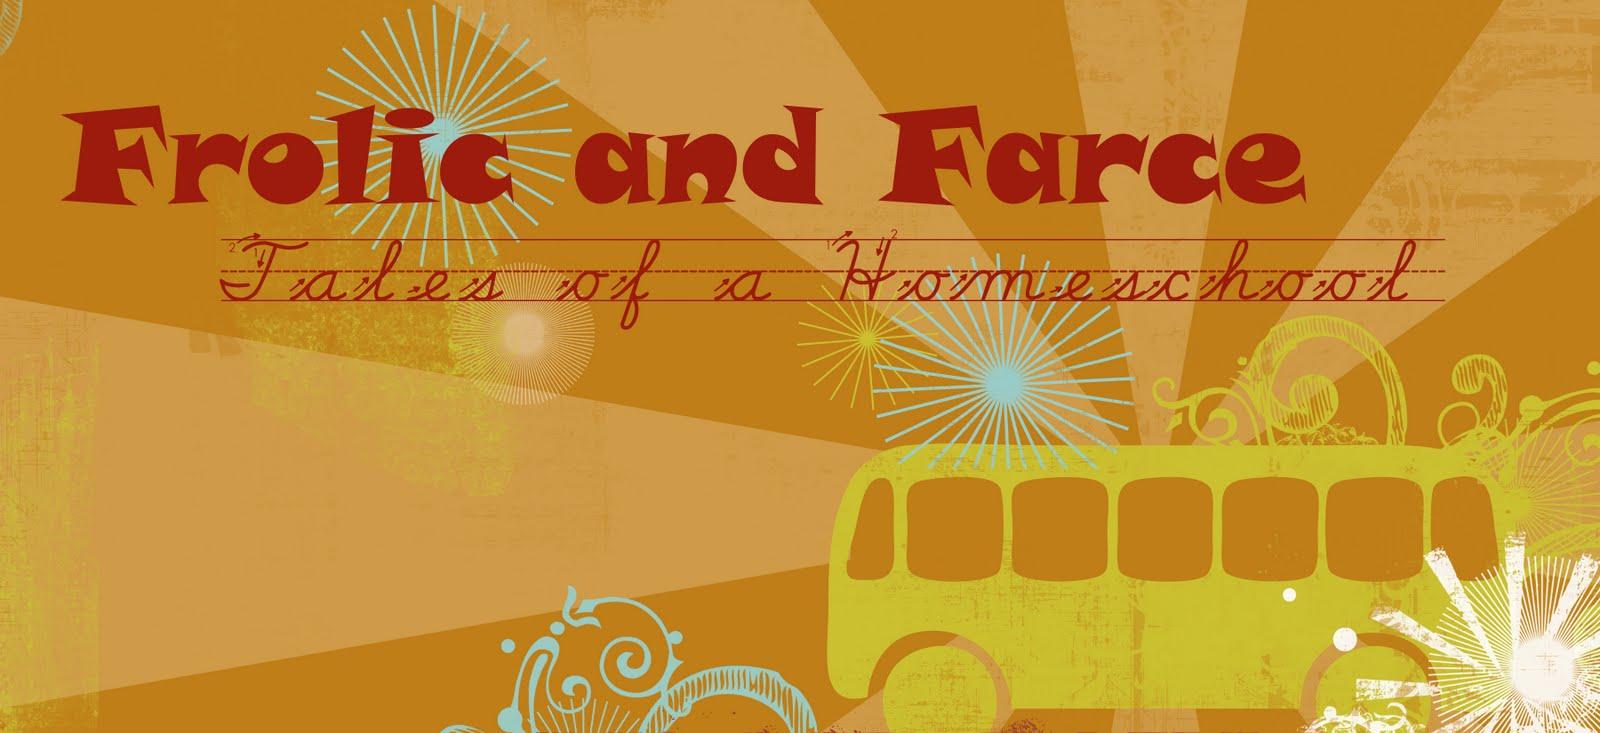 Frolic and Farce